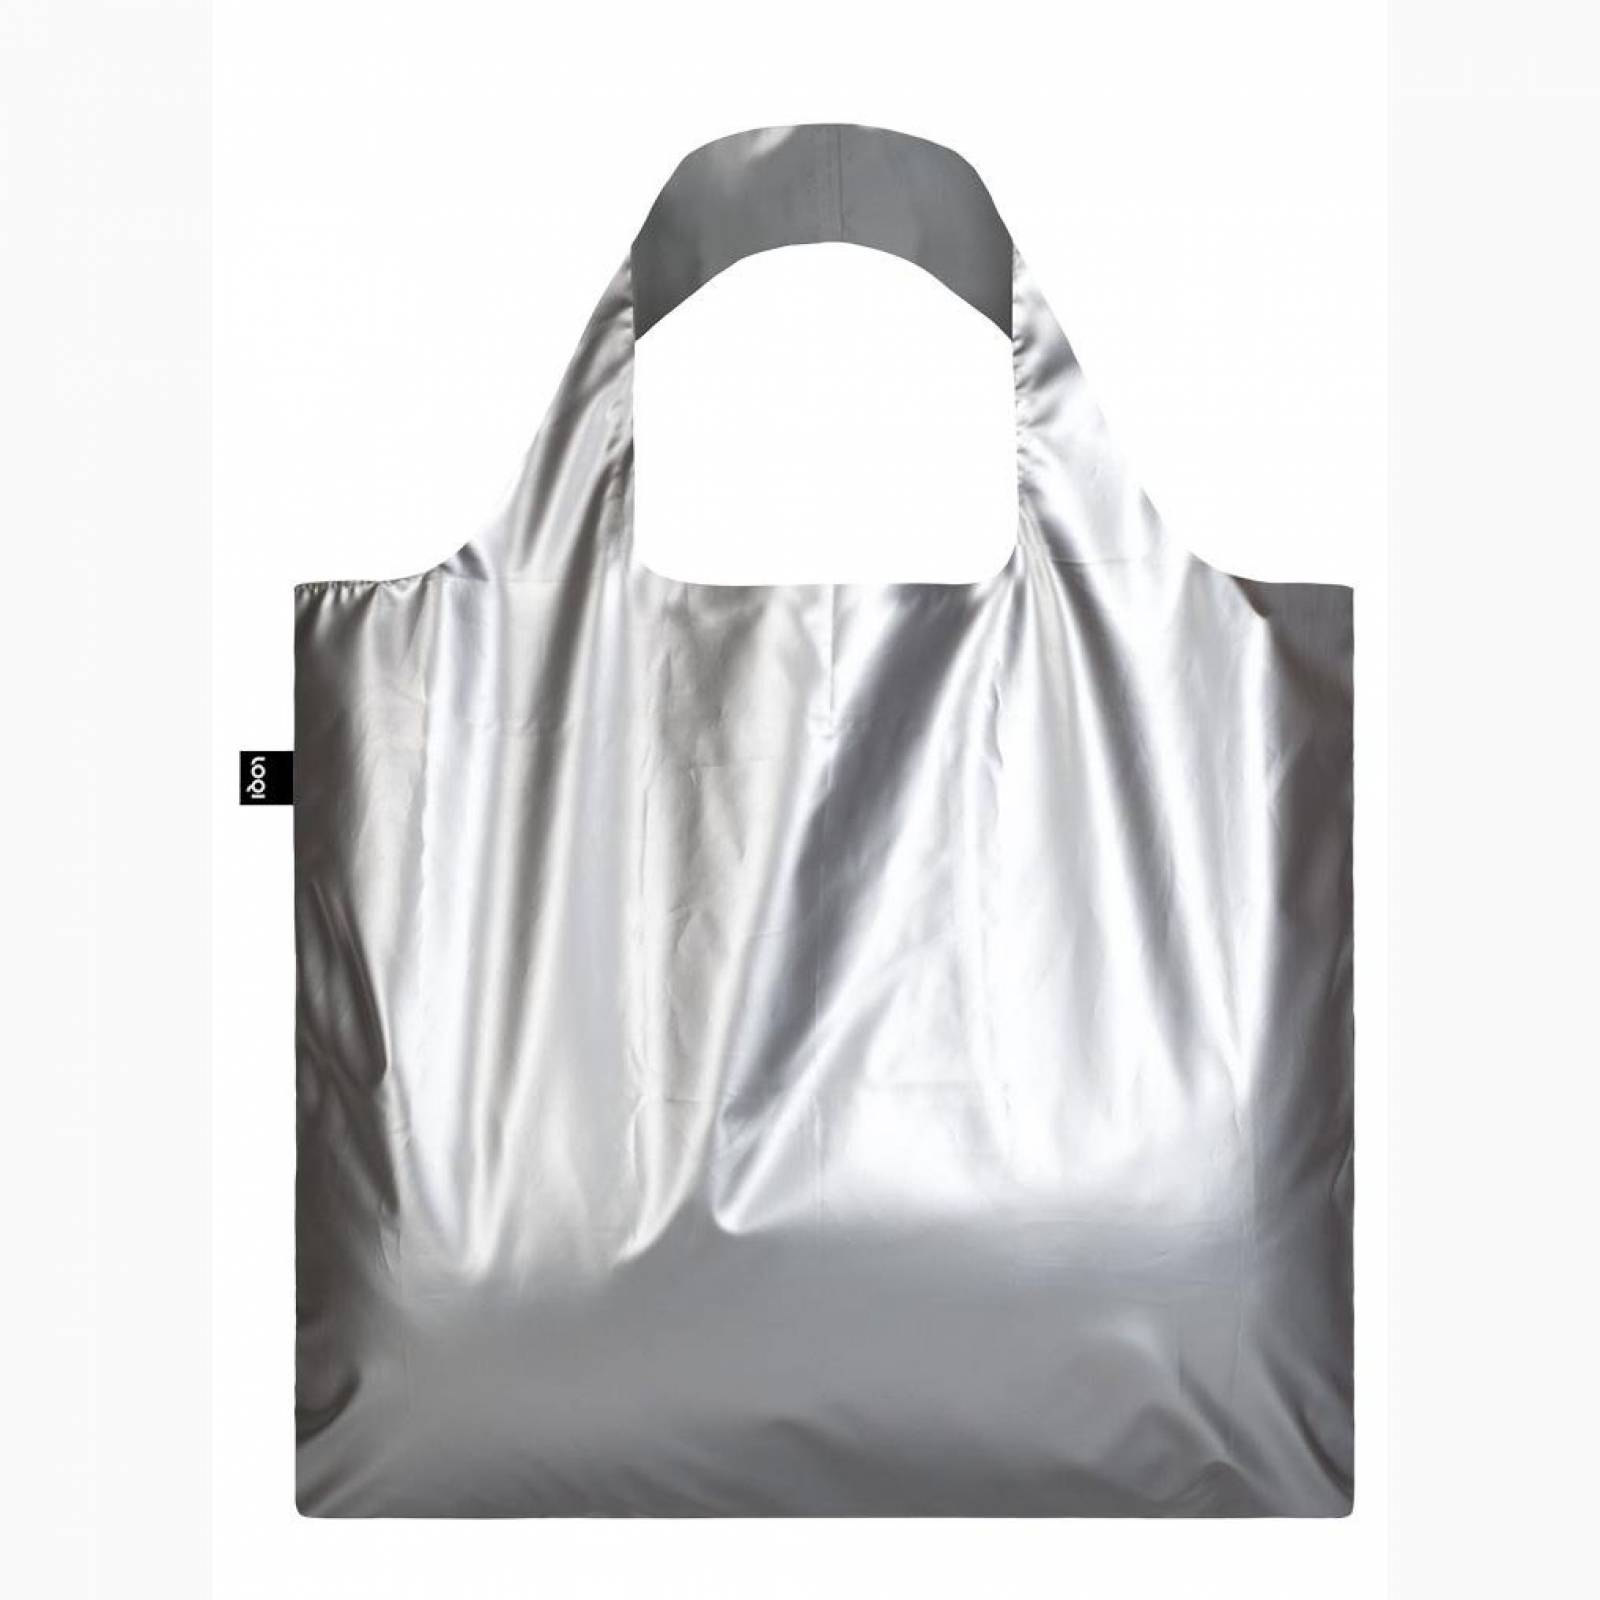 Matt Silver - Reusable Tote Bag With Pouch